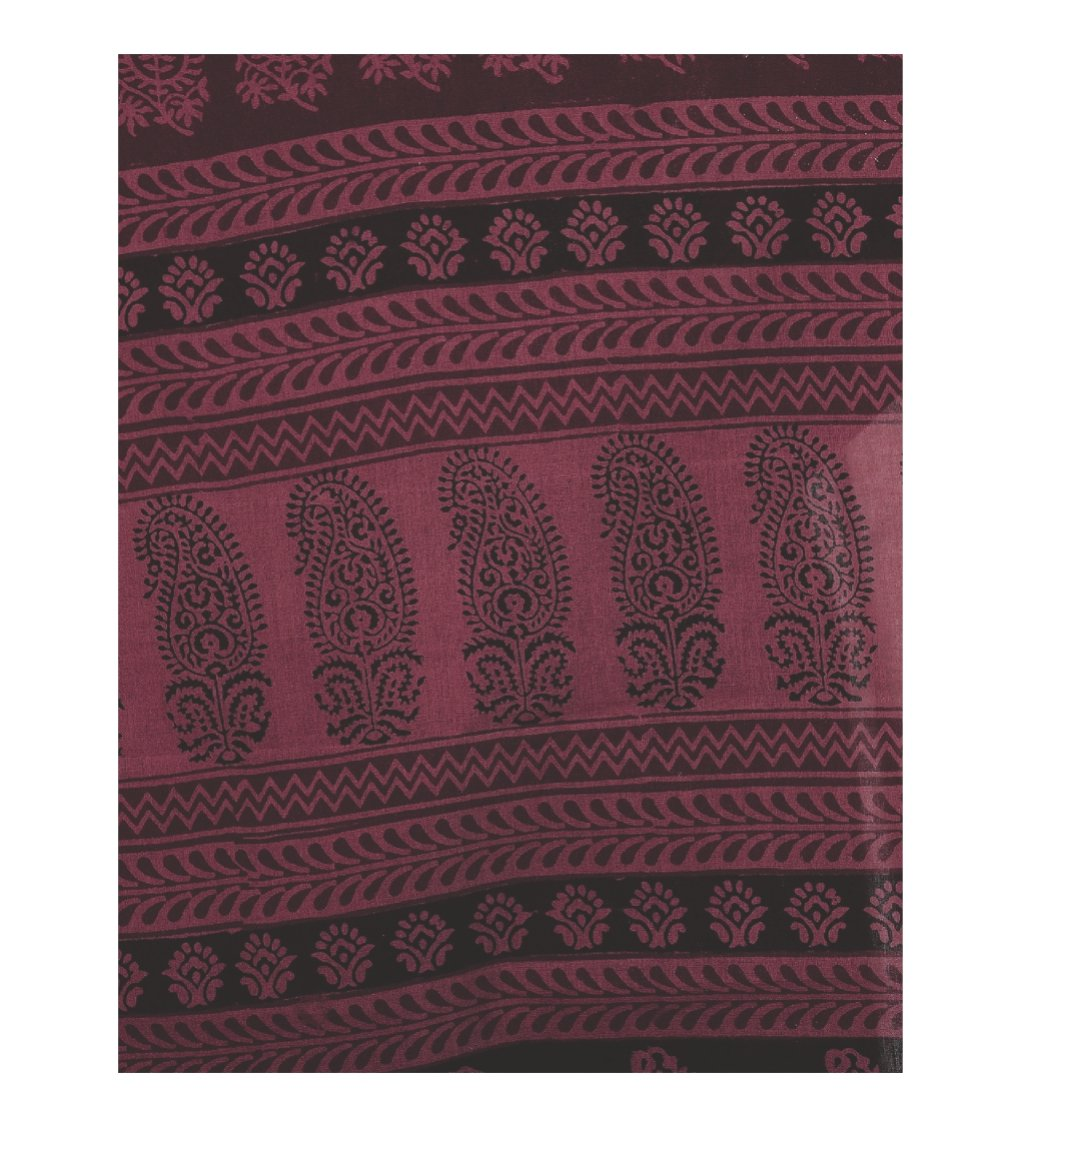 Maroon & Black Cotton Hand Block Bagh Print Handcrafted Saree-Saree-Kalakari India-ZIBASA0035-Bagh, Cotton, Geographical Indication, Hand Blocks, Hand Crafted, Heritage Prints, Natural Dyes, Sarees, Sustainable Fabrics-[Linen,Ethnic,wear,Fashionista,Handloom,Handicraft,Indigo,blockprint,block,print,Cotton,Chanderi,Blue, latest,classy,party,bollywood,trendy,summer,style,traditional,formal,elegant,unique,style,hand,block,print, dabu,booti,gift,present,glamorous,affordable,collectible,Sari,Saree,pr